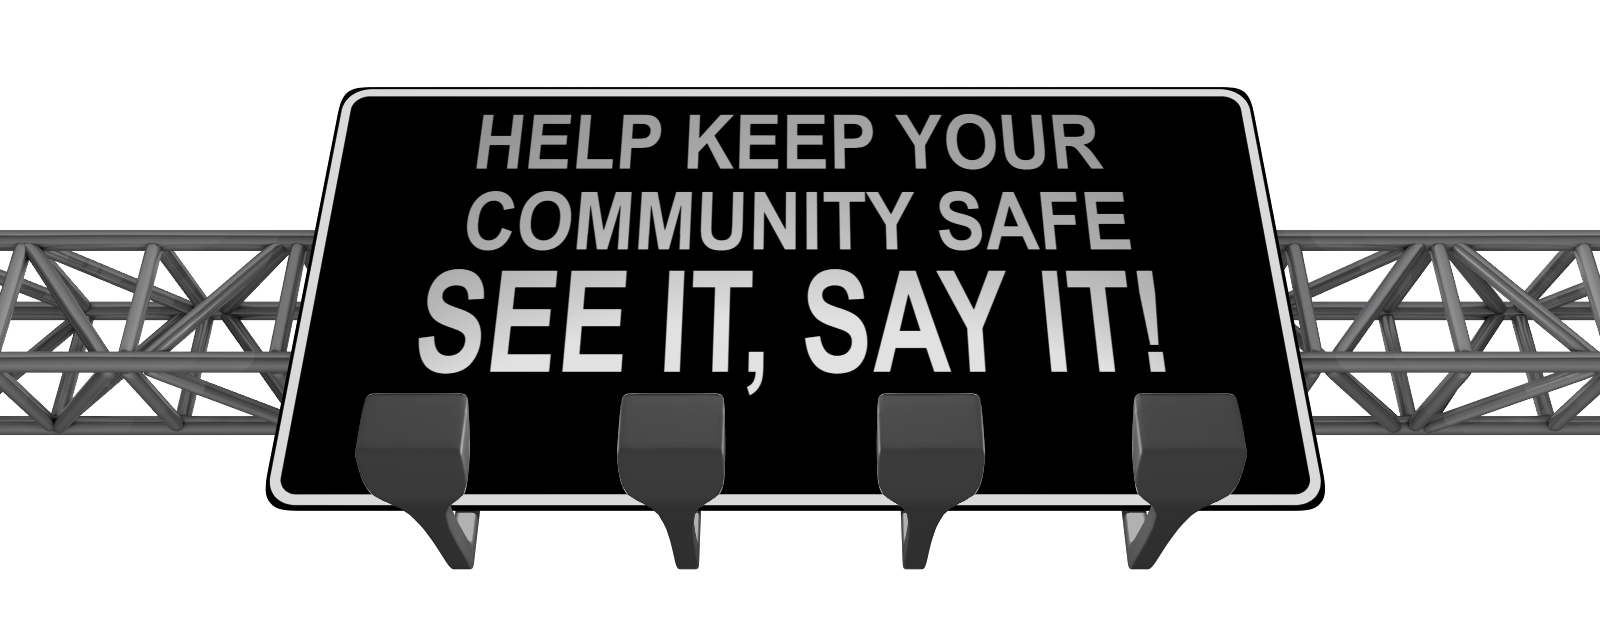 Keep Your Community Safe